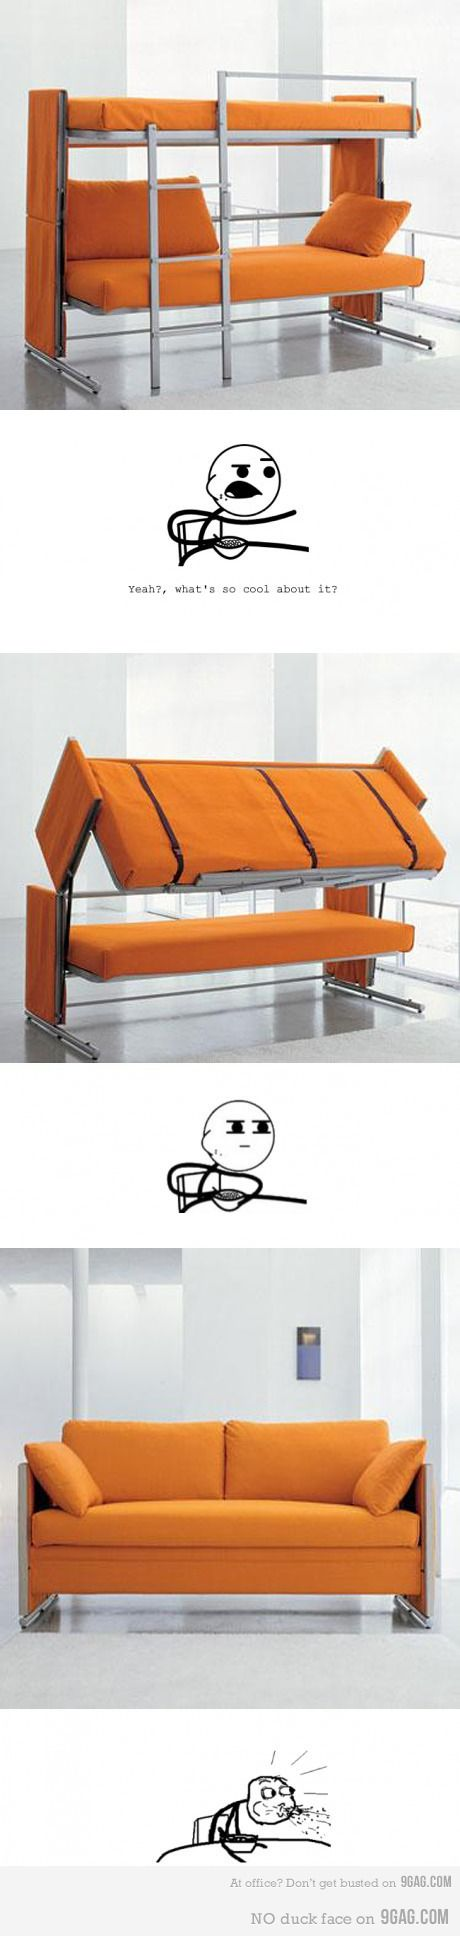 Awesome Bunk bed and sofa+ Cereal guy